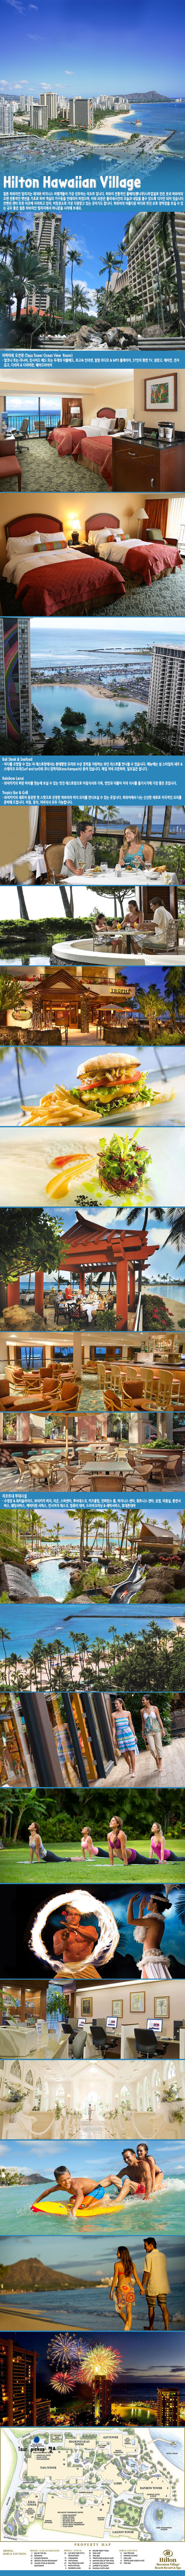 hilton-hawaiian-village.jpg